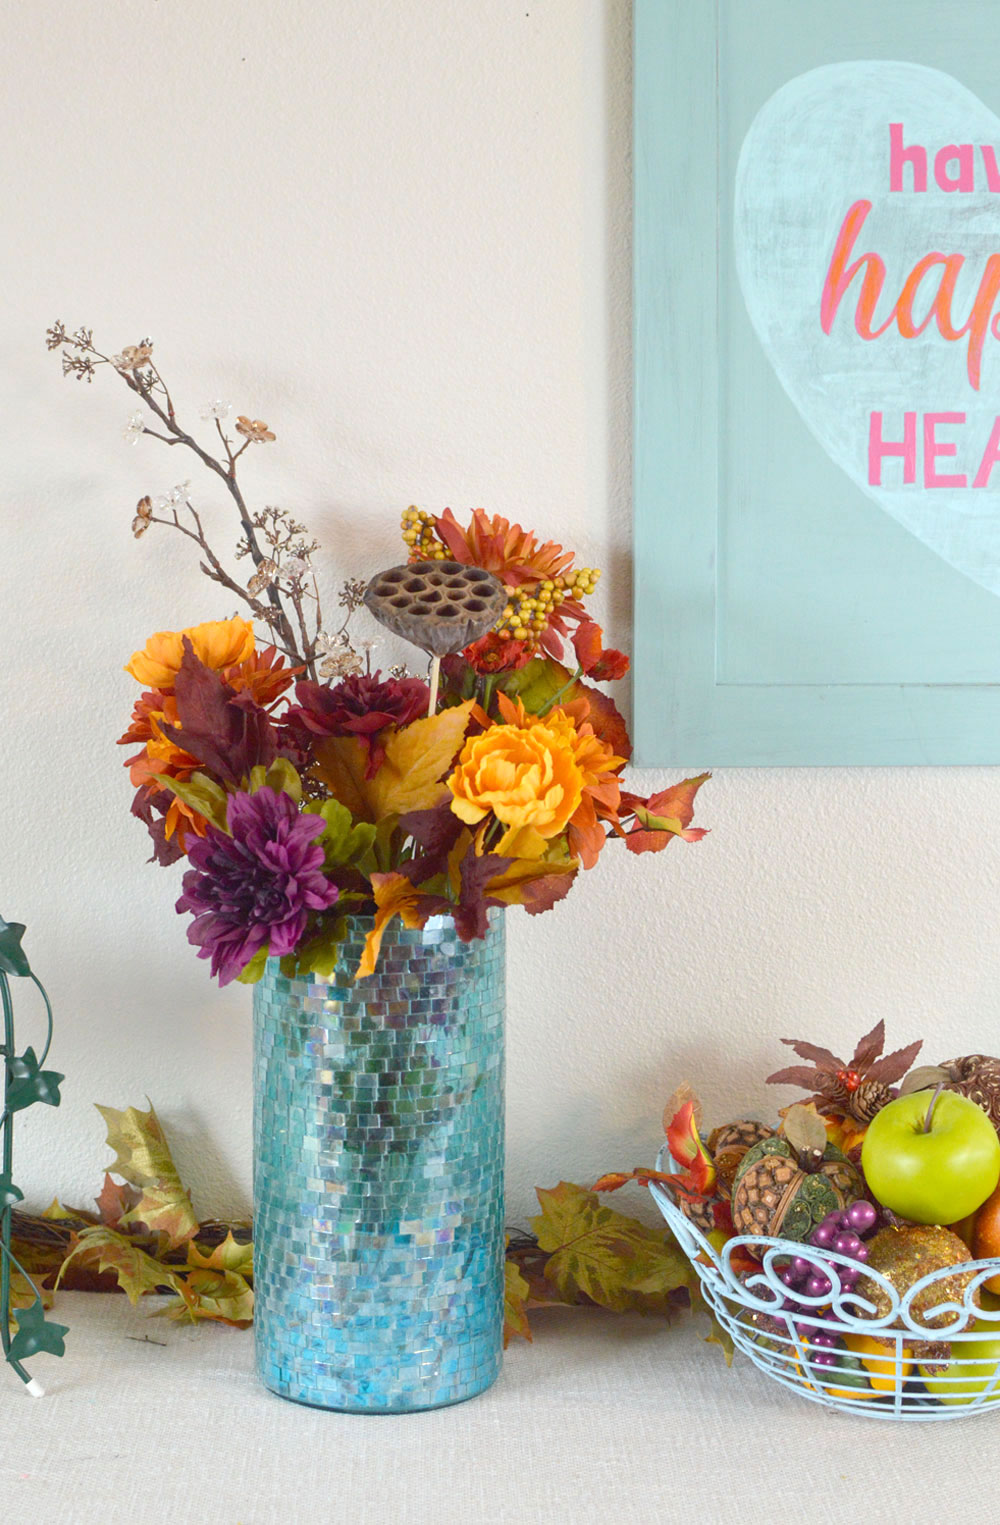 Simply Beautiful Fall Decorations and Fruit Basket - Mommy Scene